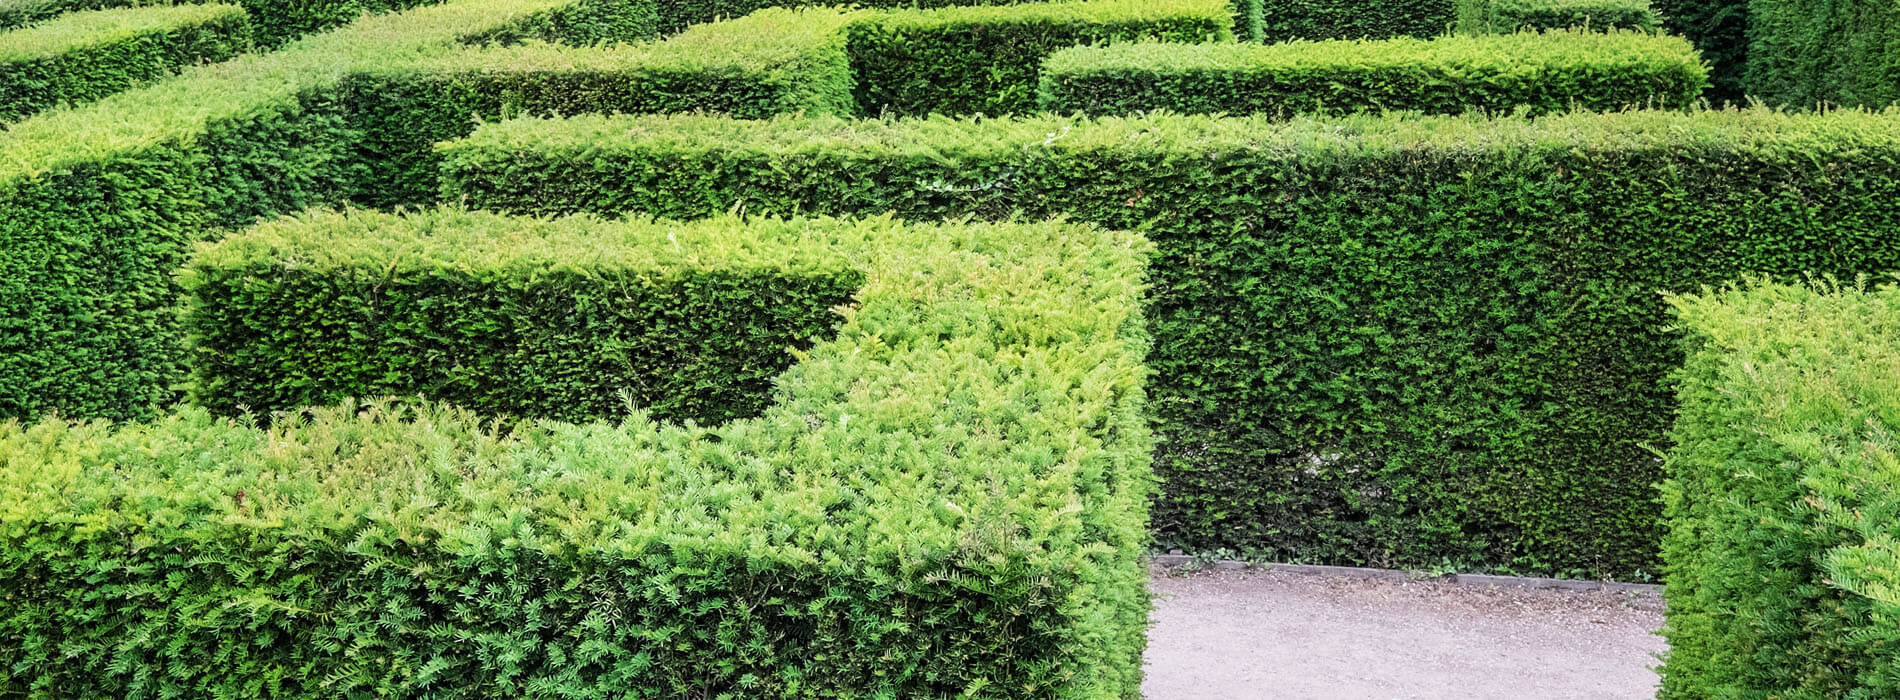 yew shrub: Buy Yew Hedge available for sale at best prices.